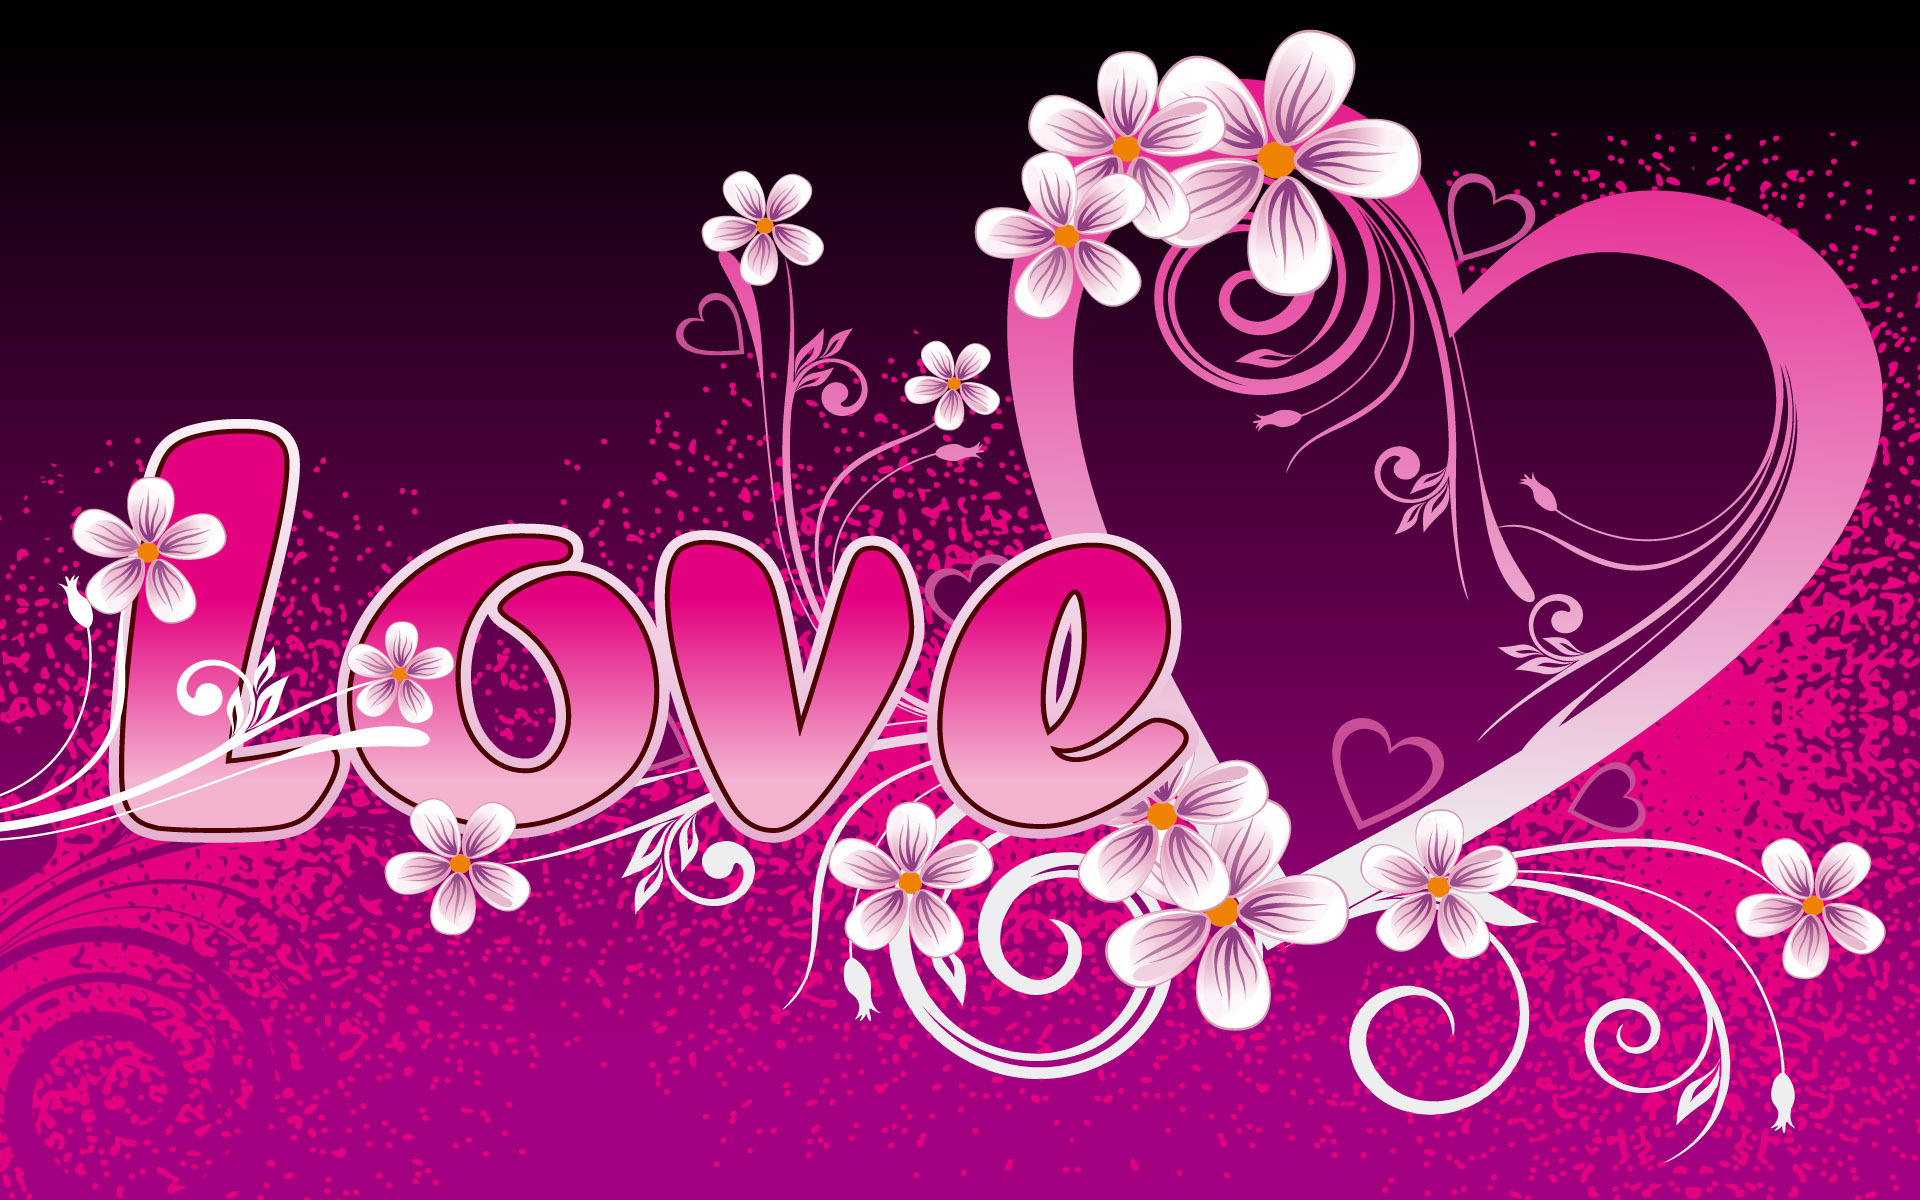 Lovely Love Design Wallpapers HD Wallpapers 1920x1200